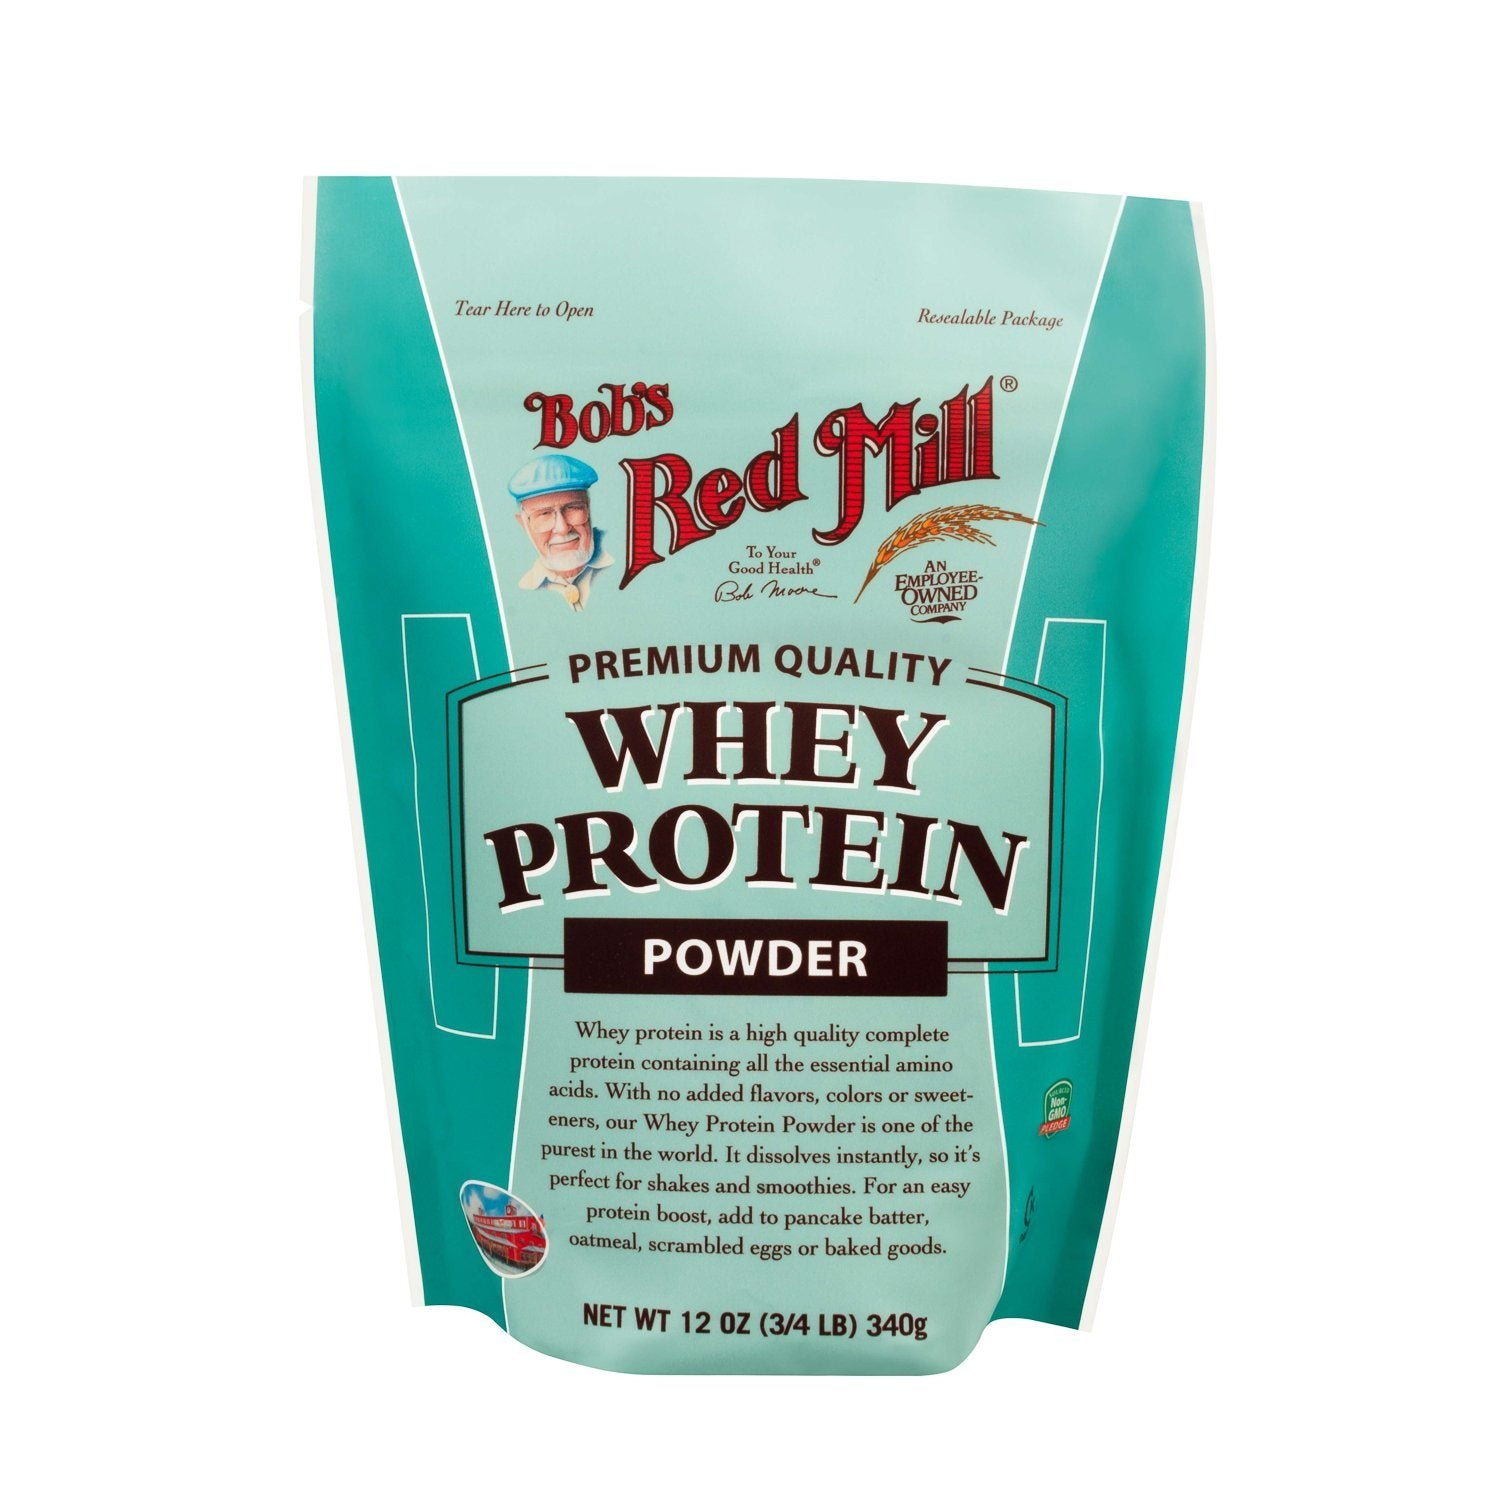 Bob's Red Mill Whey Protein Powder Bob's Red Mill 12 Ounce